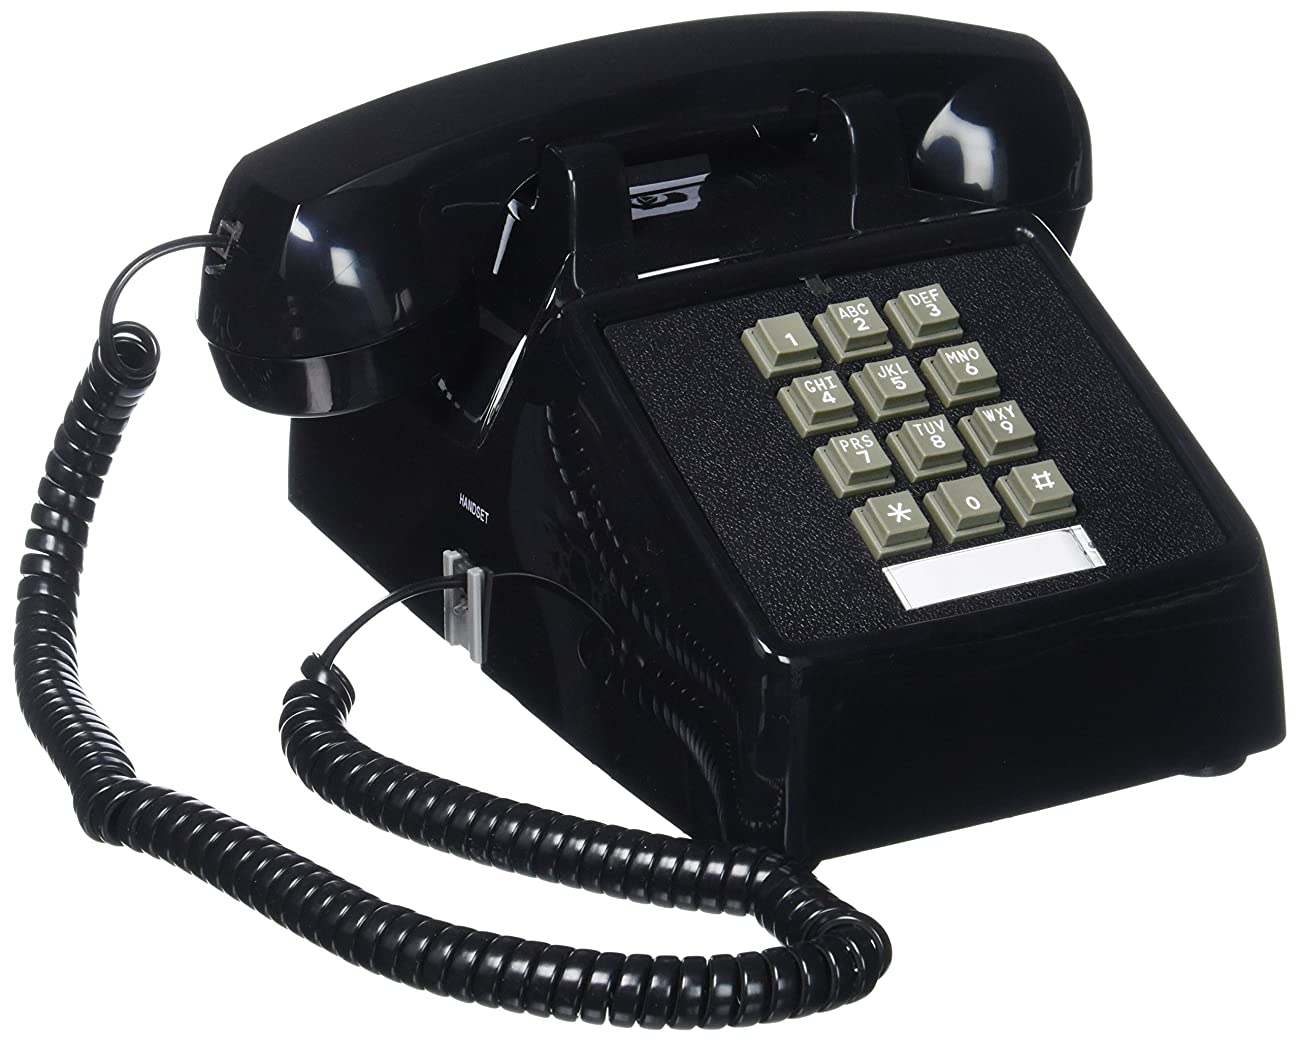 Cortelco(ITT-2500-MD-BK) Single Line Desk Telephone 0